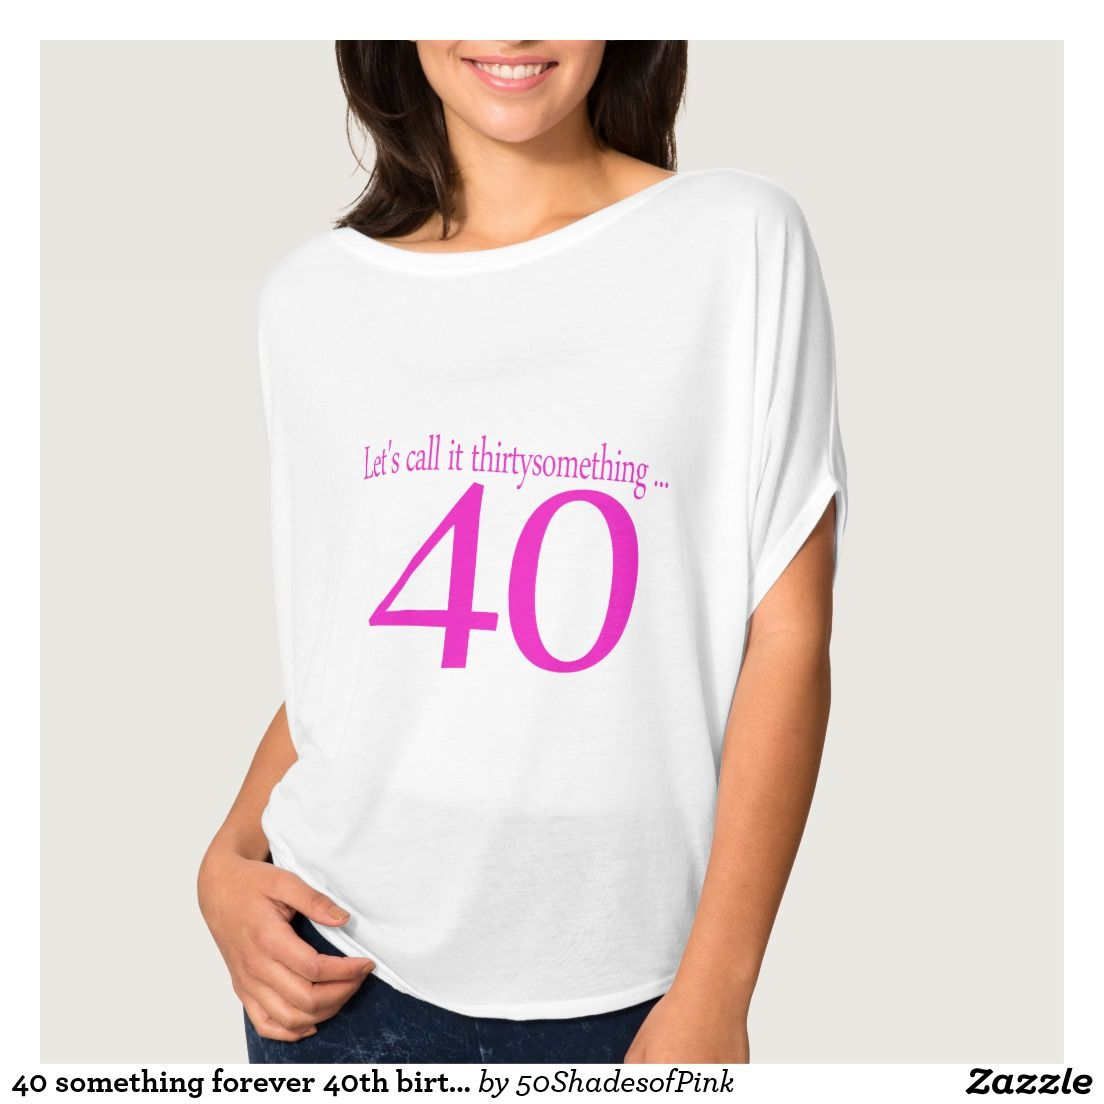 40 something forever 40th birthday tshirt